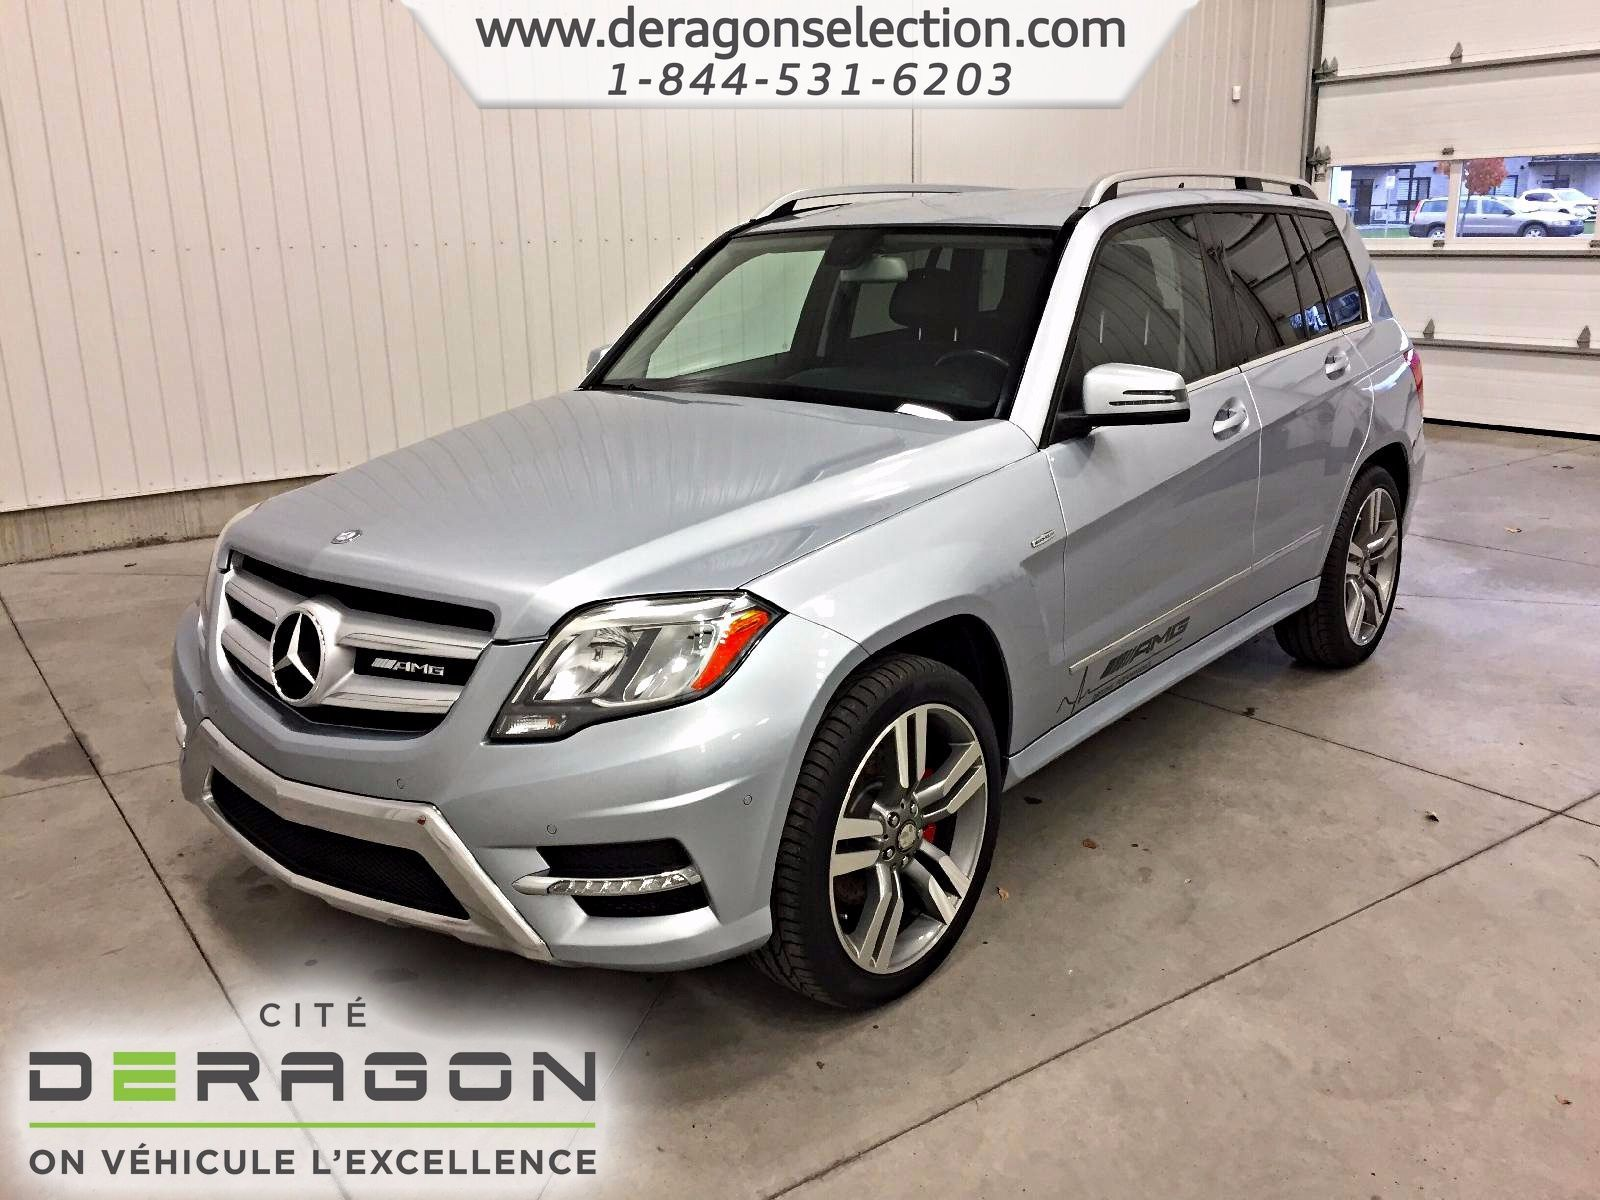 mercedes benz glk class 350 4matic amg package aucun accident d 2013 d 39 occasion cowansville. Black Bedroom Furniture Sets. Home Design Ideas